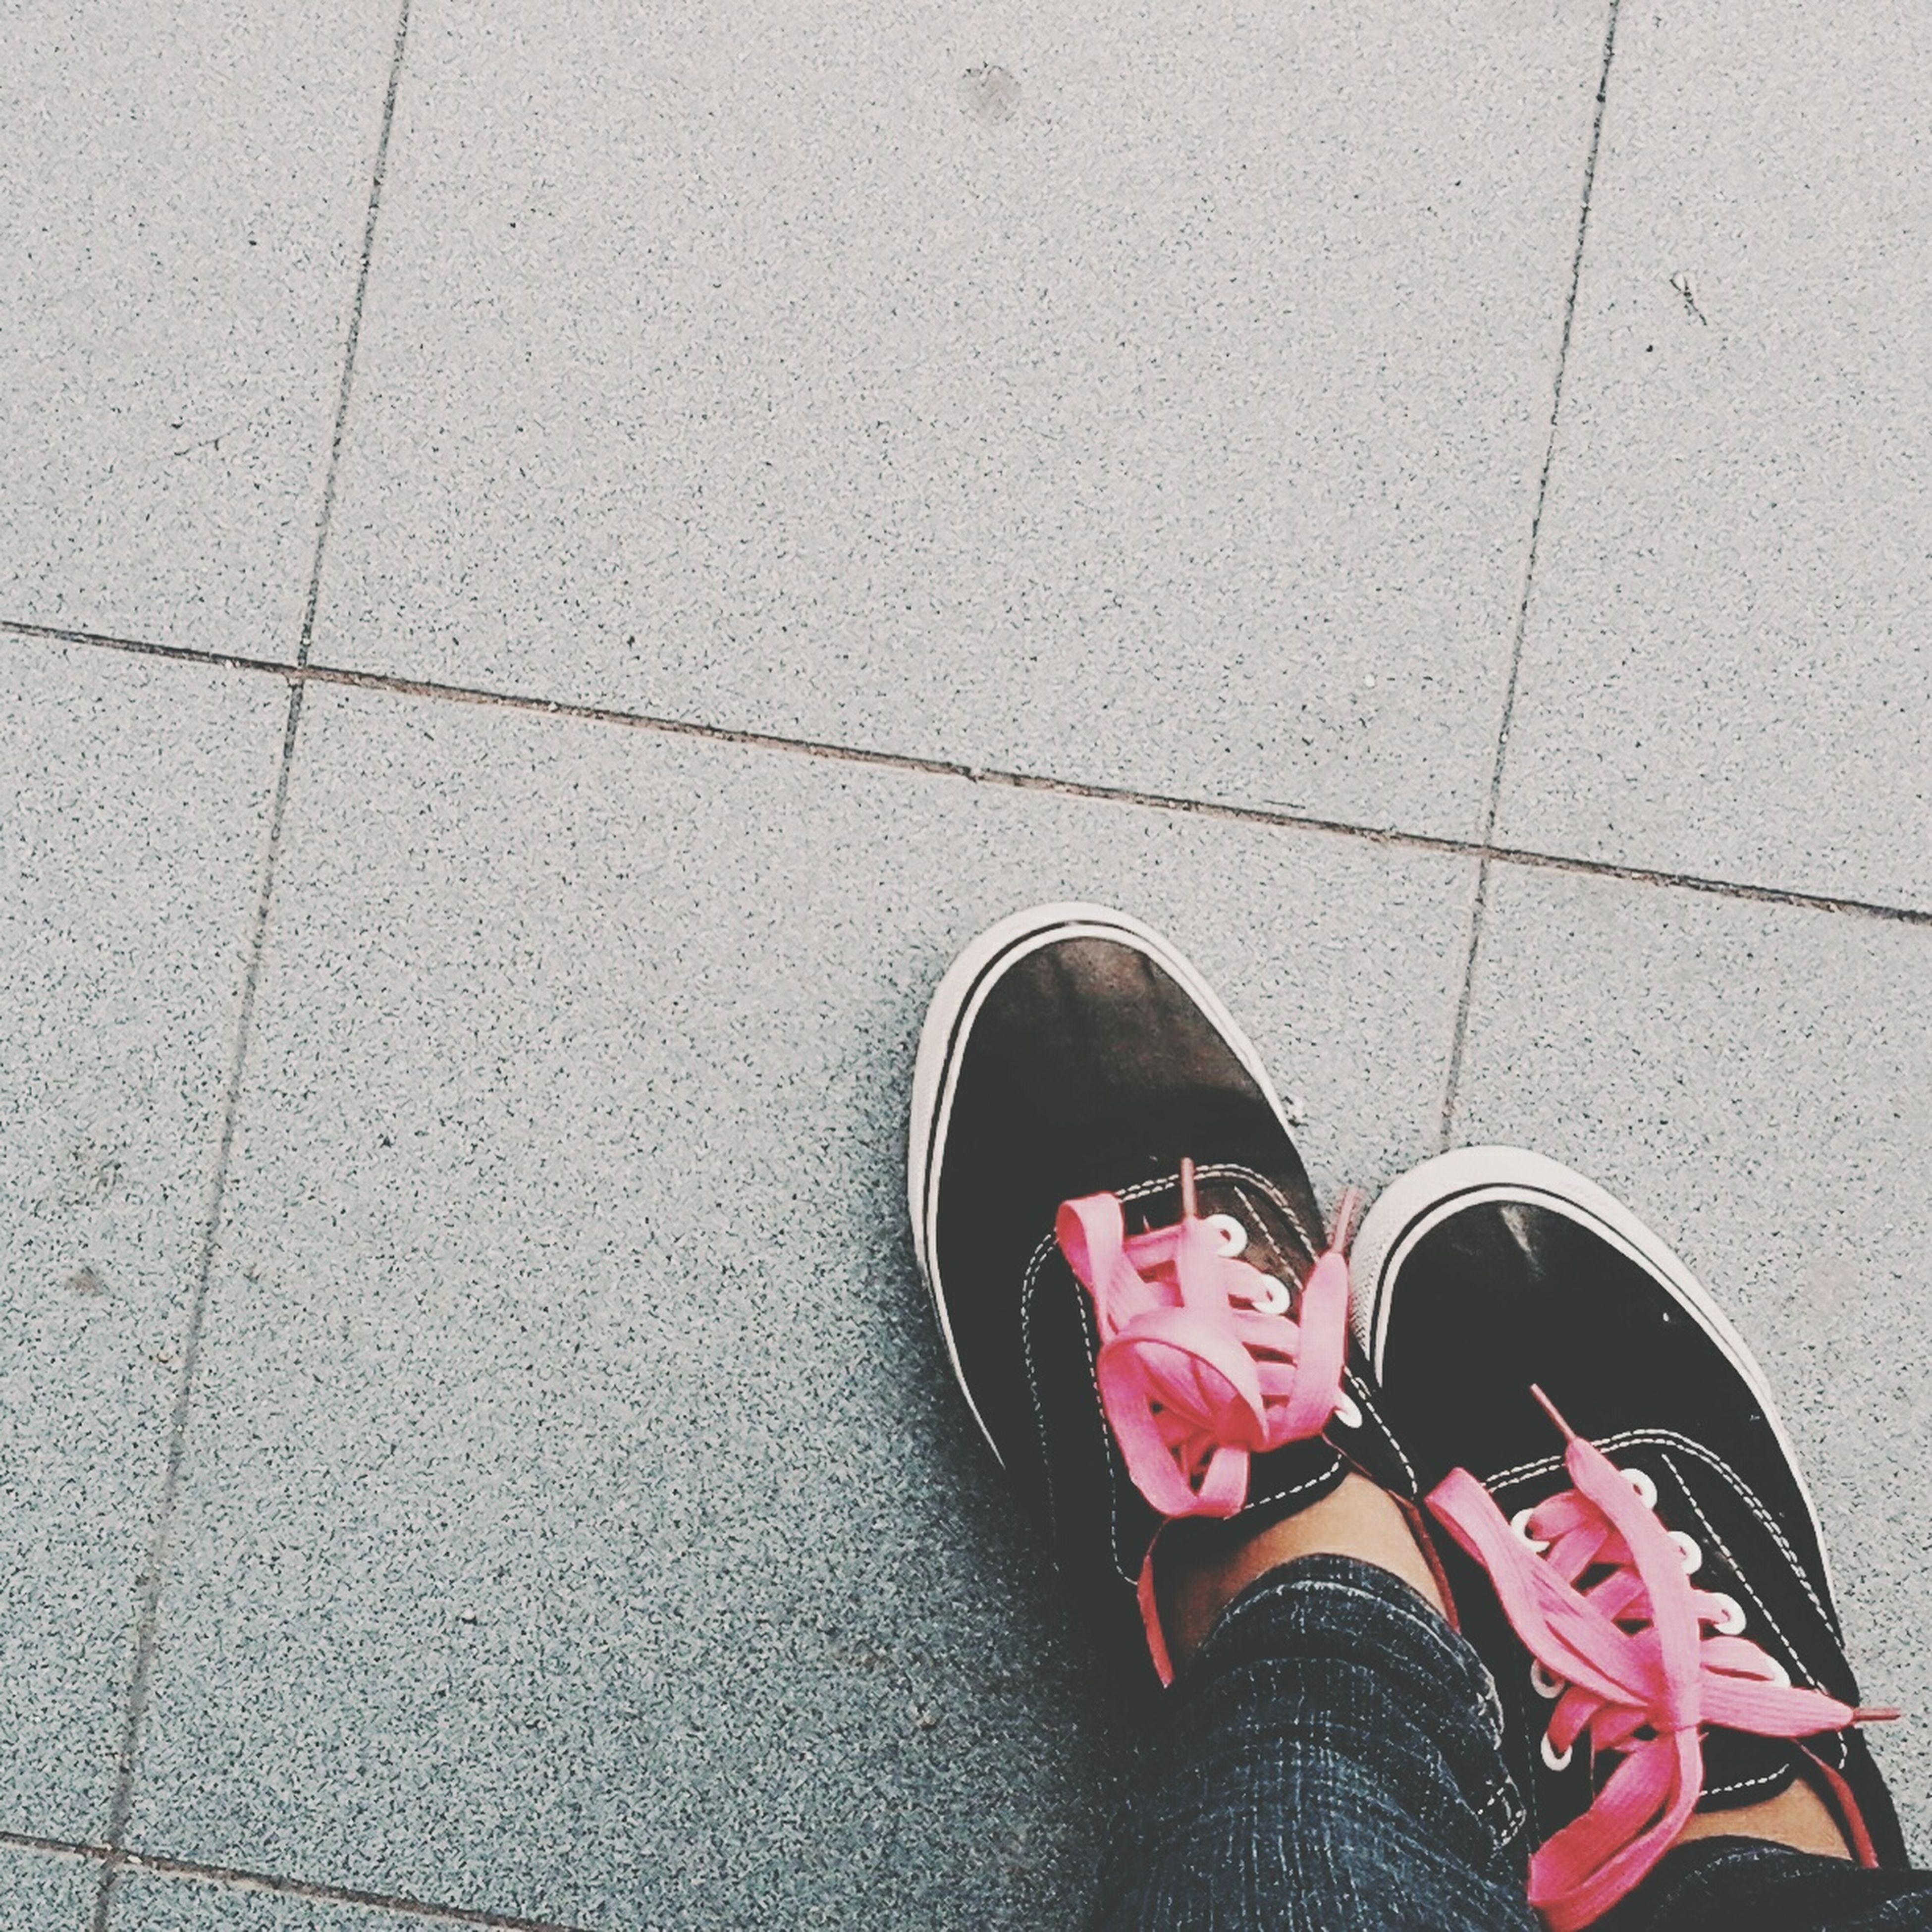 shoe, low section, person, high angle view, footwear, street, personal perspective, standing, directly above, human foot, cobblestone, paving stone, tiled floor, pair, flooring, footpath, canvas shoe